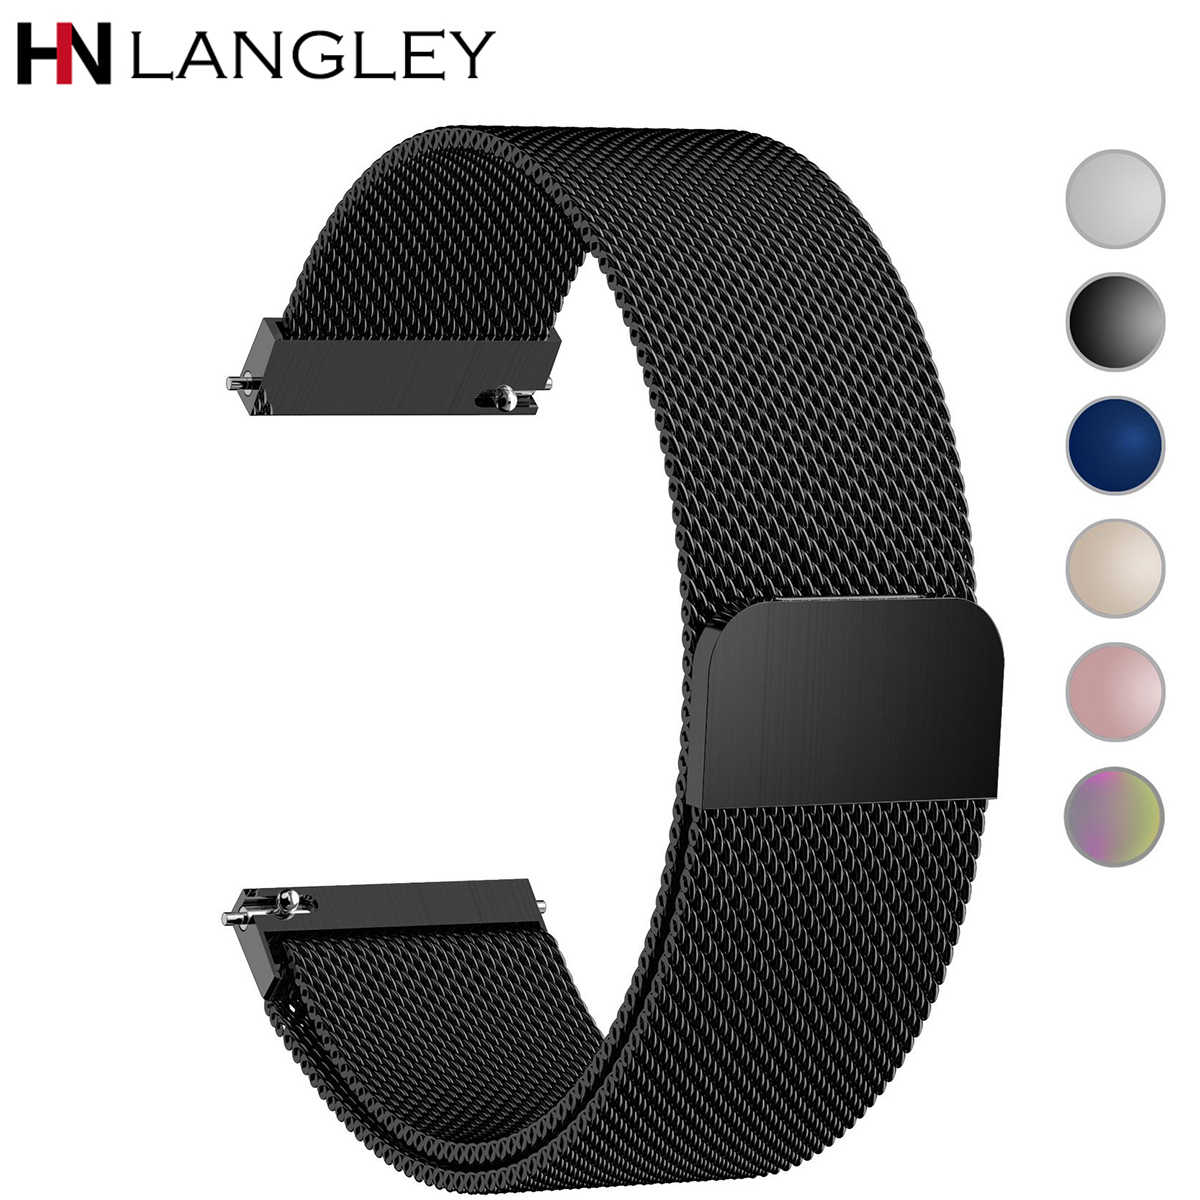 General Quick Release Watch Strap Milanese Magnetic Closure Stainless Steel Watch Band Replacement Strap 16mm 18mm 20mm 22mm 24